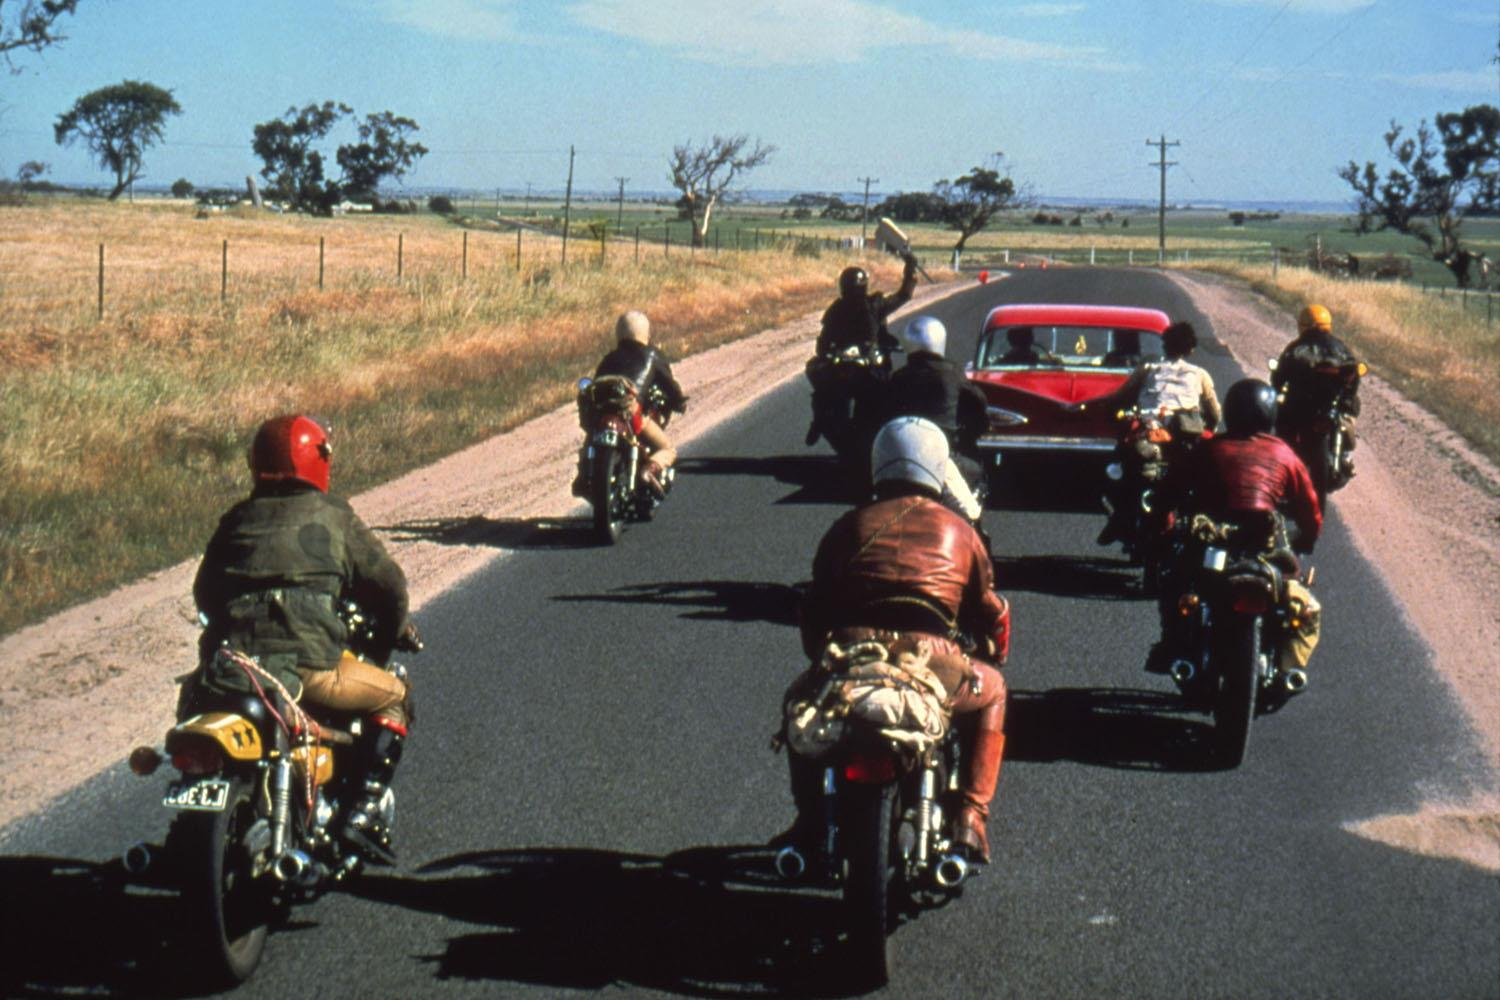 Gang members pursue a car in Mad Max